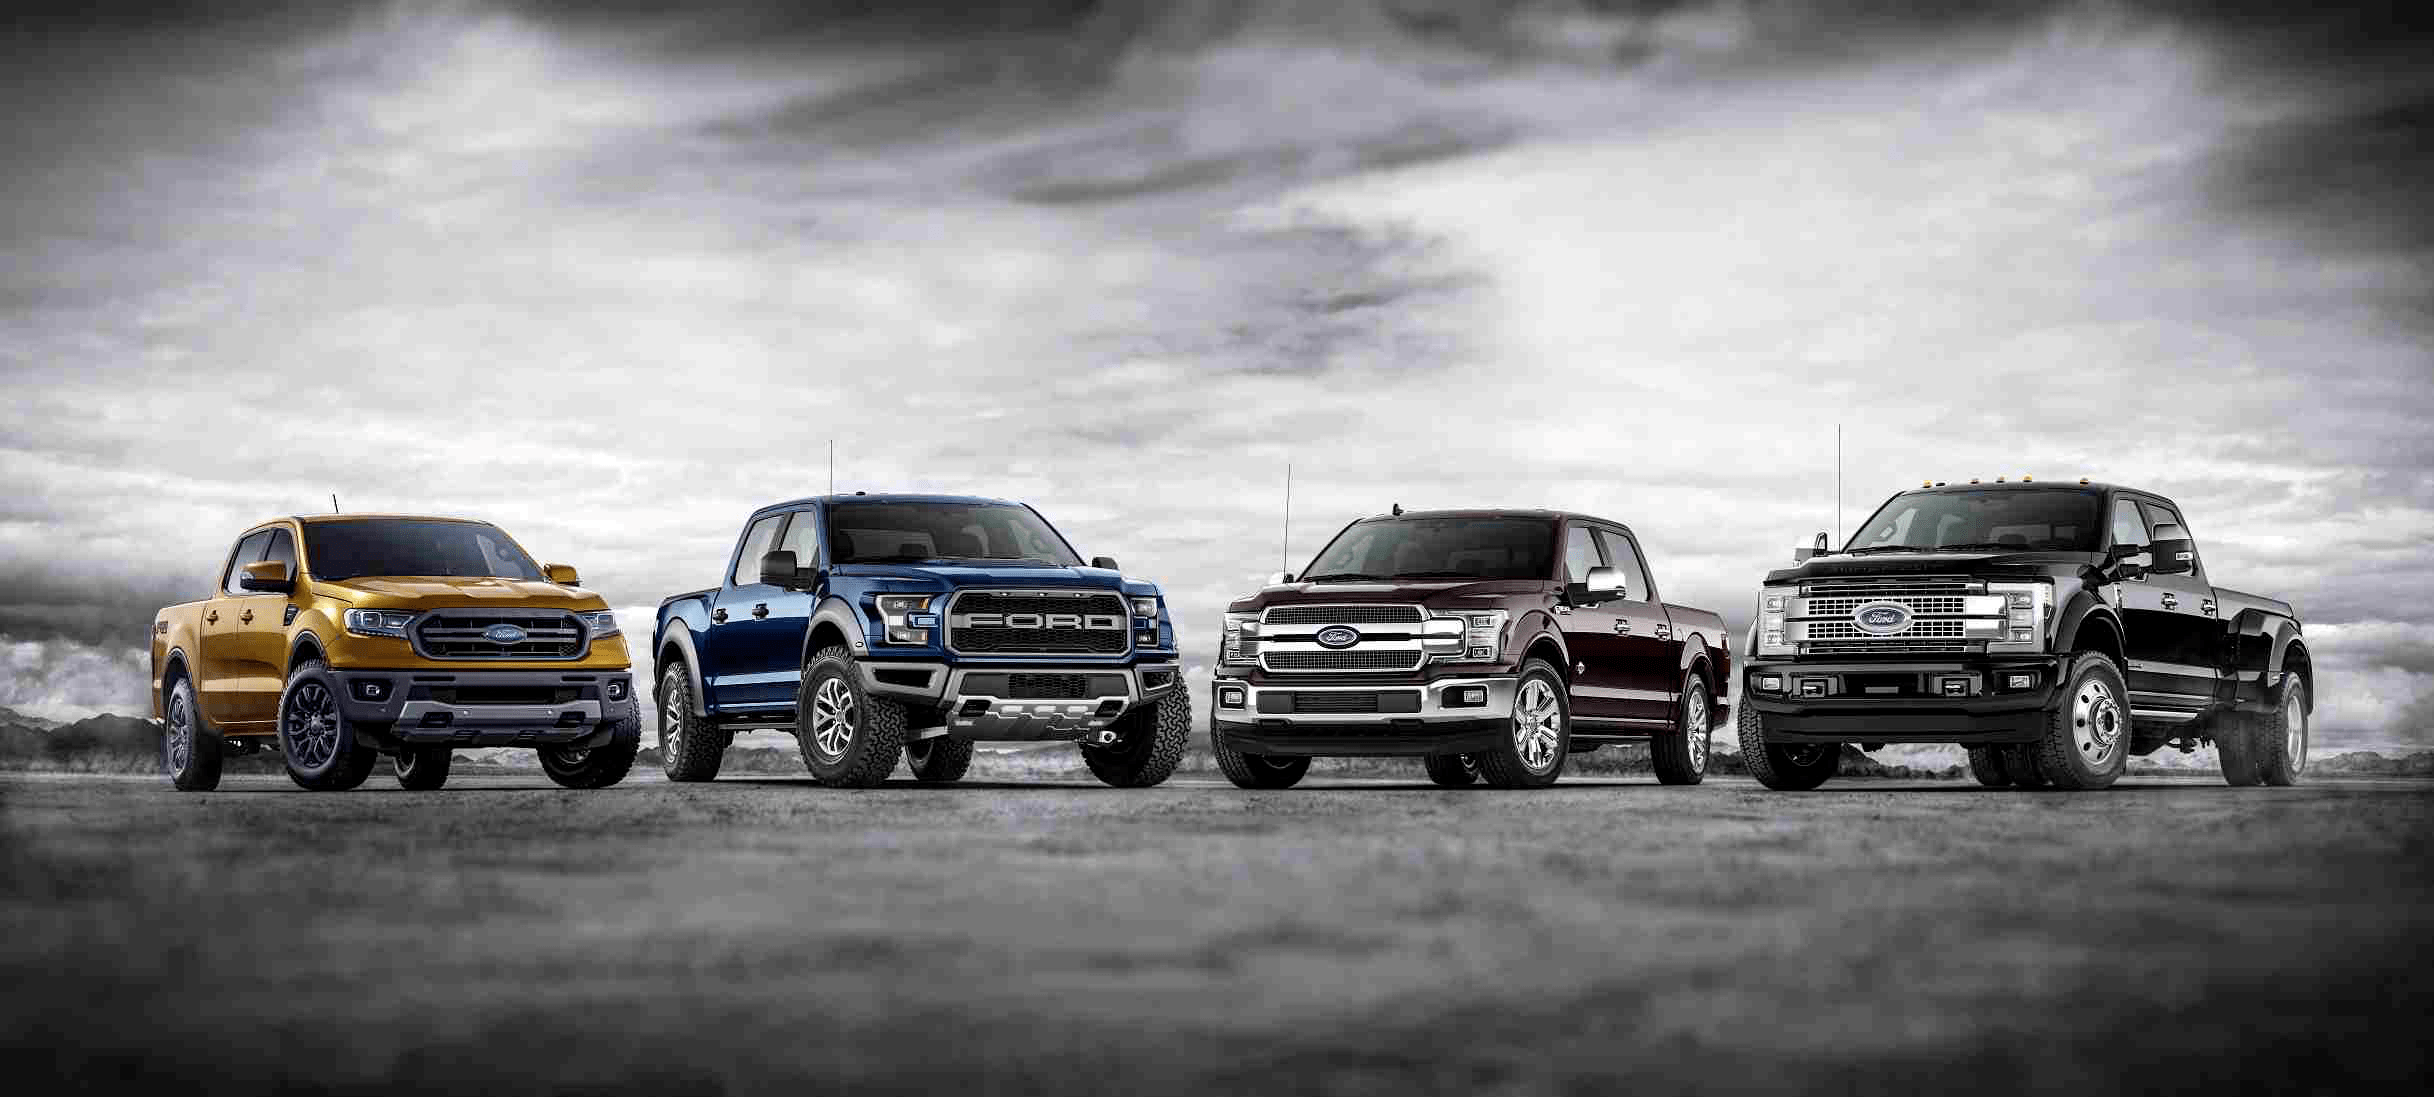 Ford Teases New Offroad And Electric Suvs, Hybrid Pickup